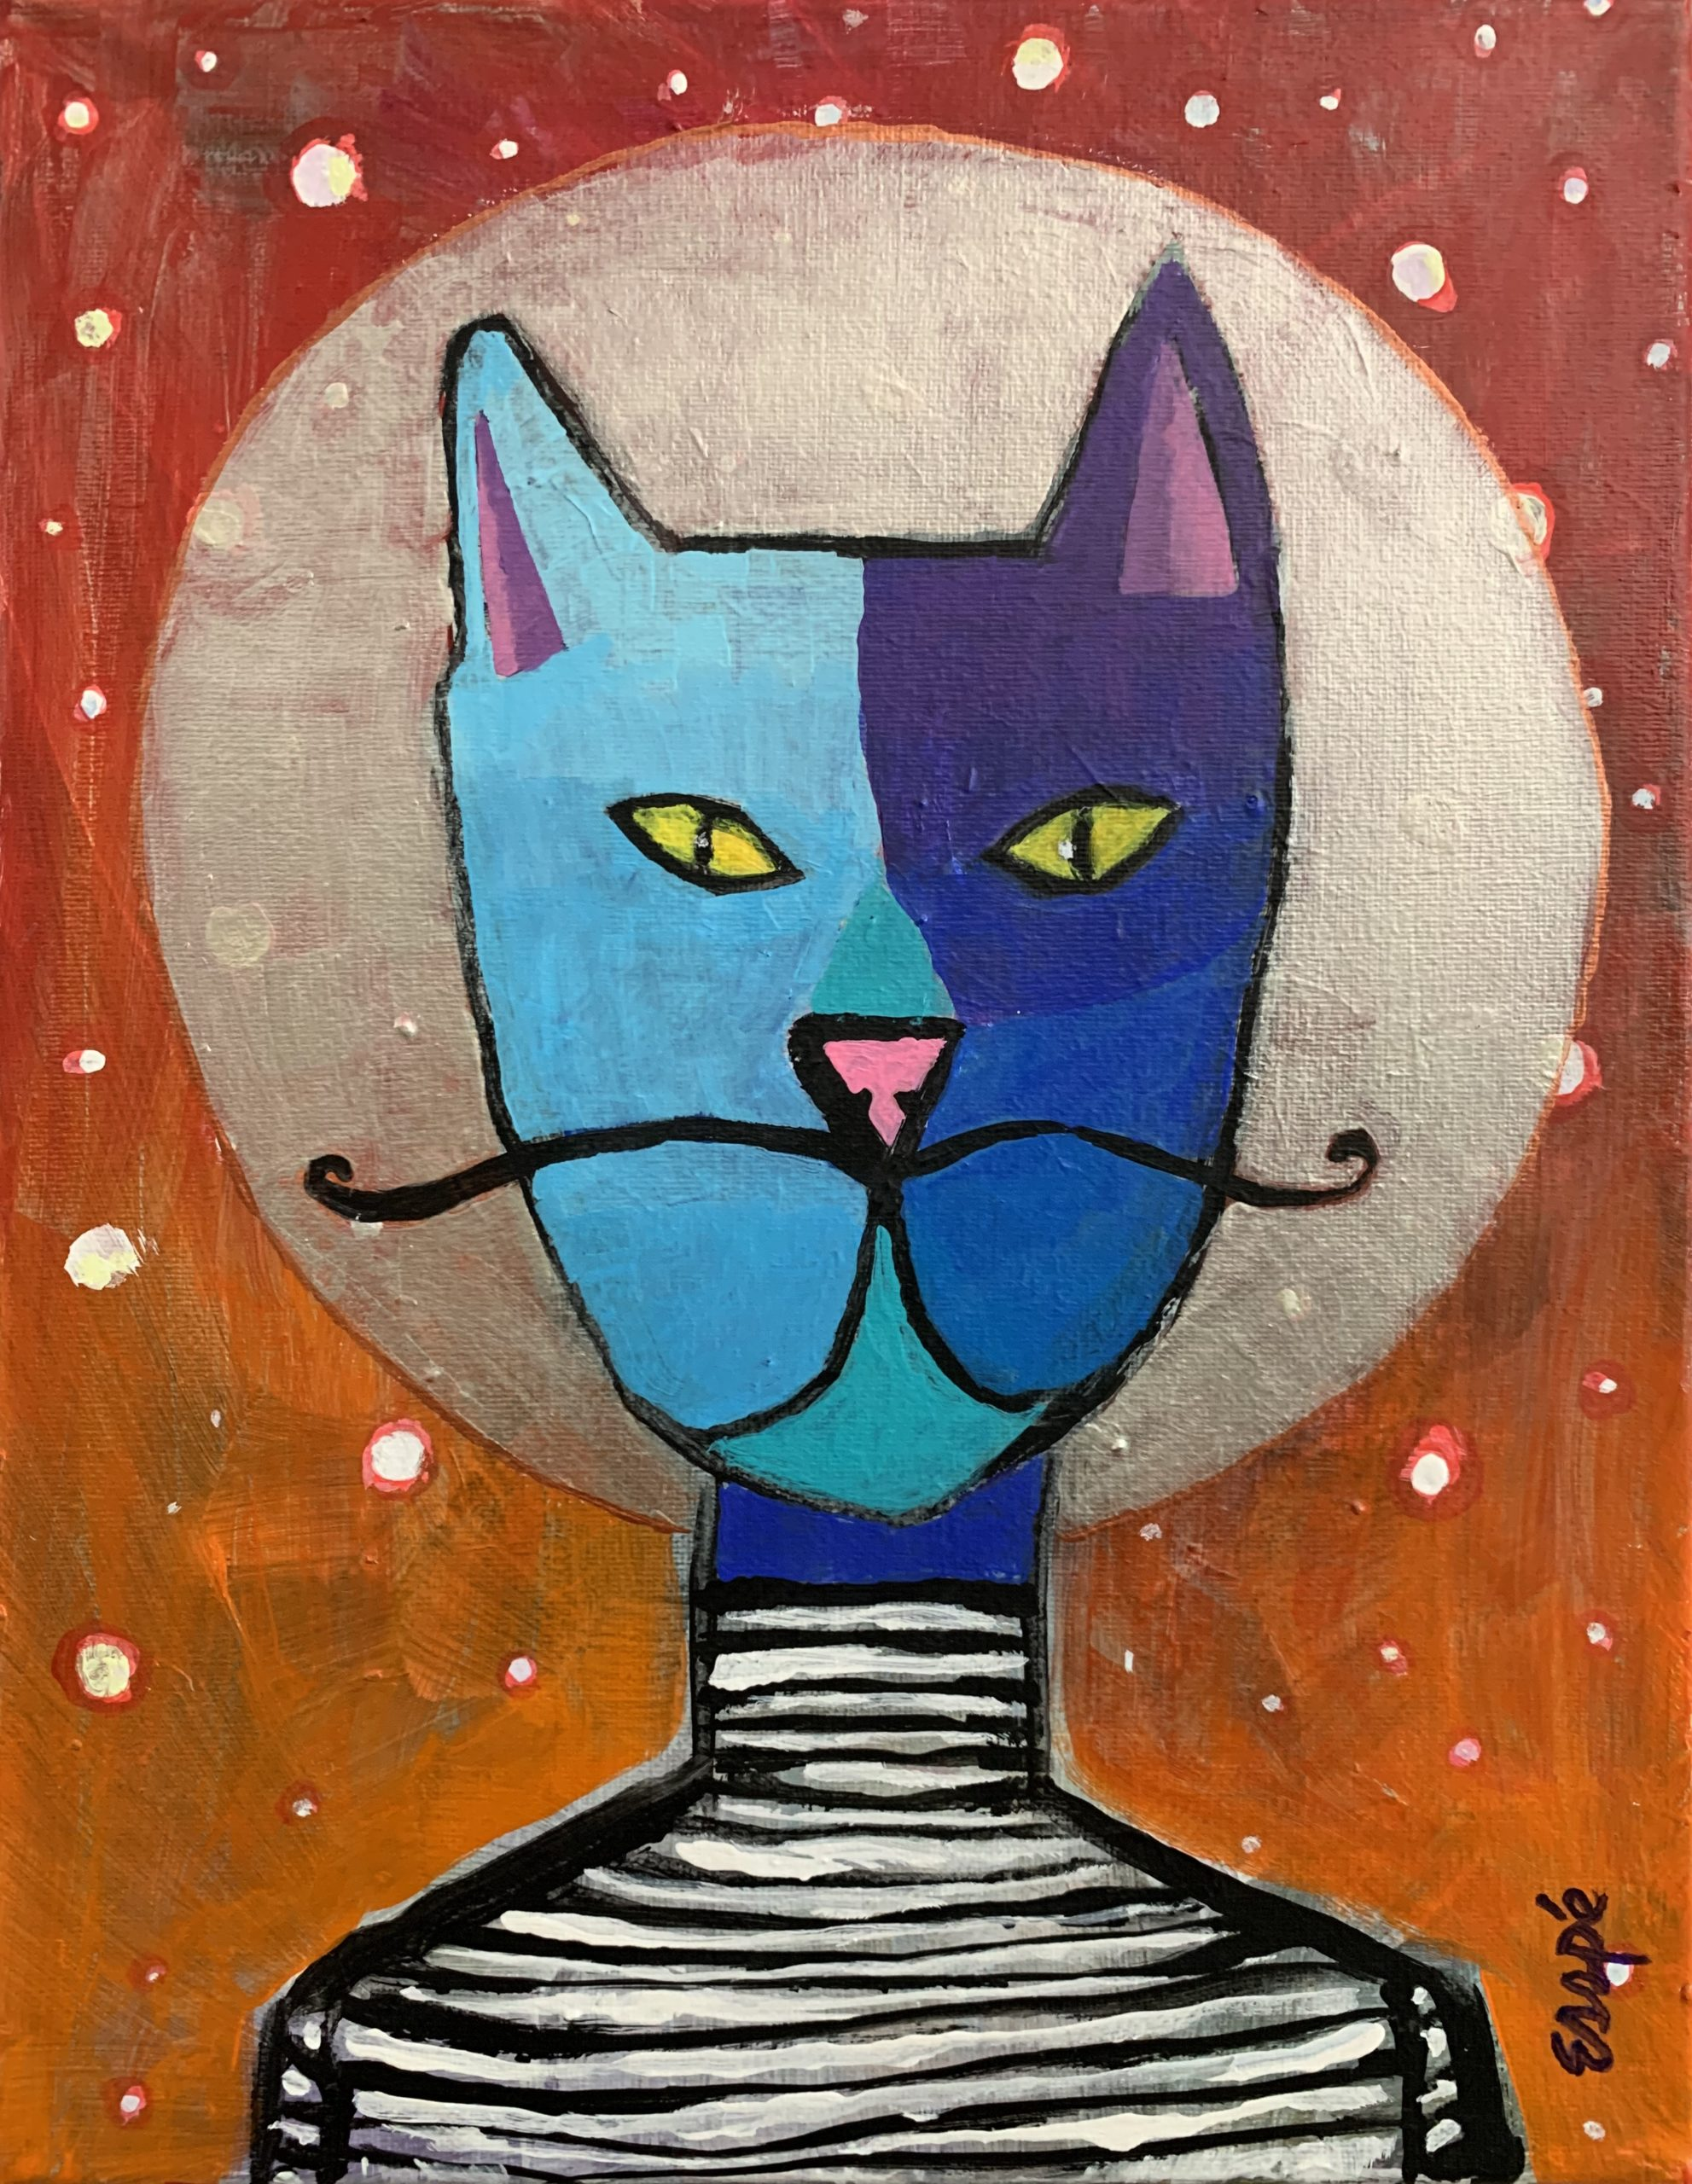 Dali's cat (from memory)